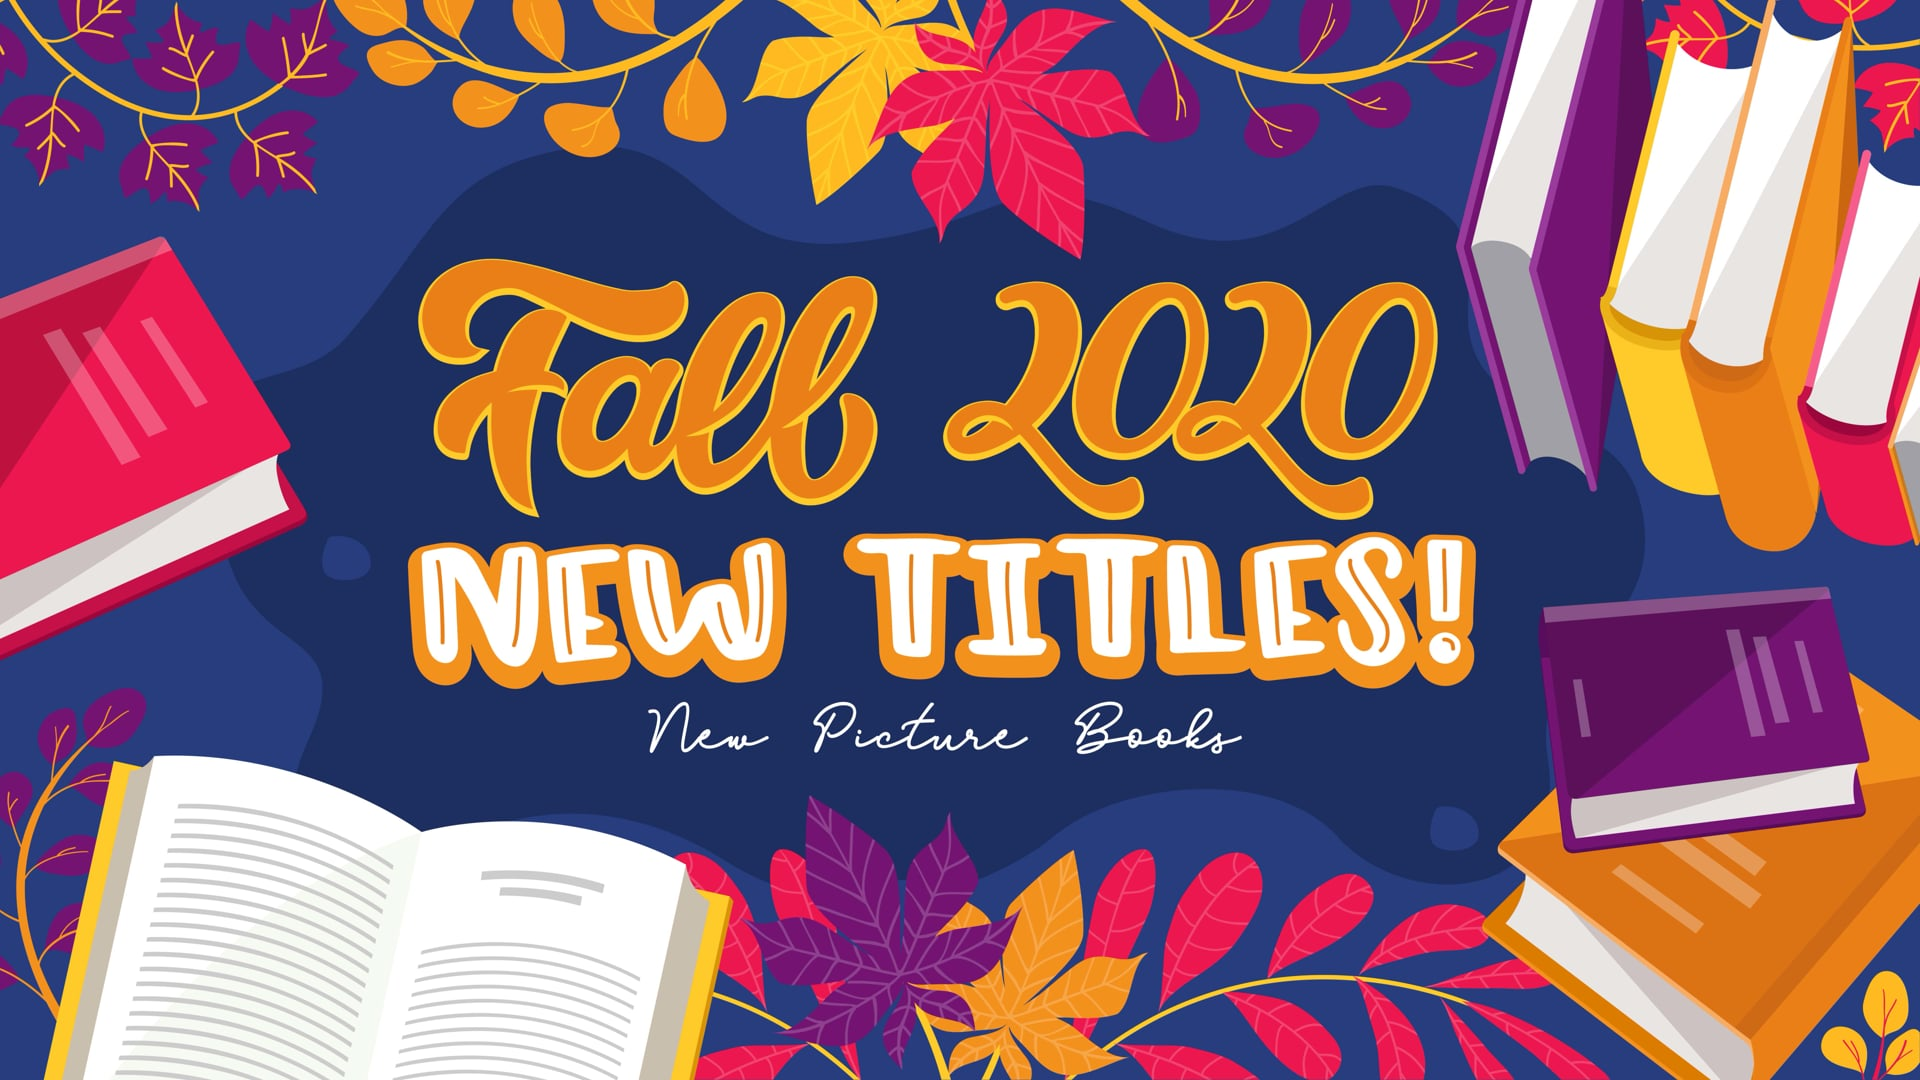 Fall 2020- New Picture Books